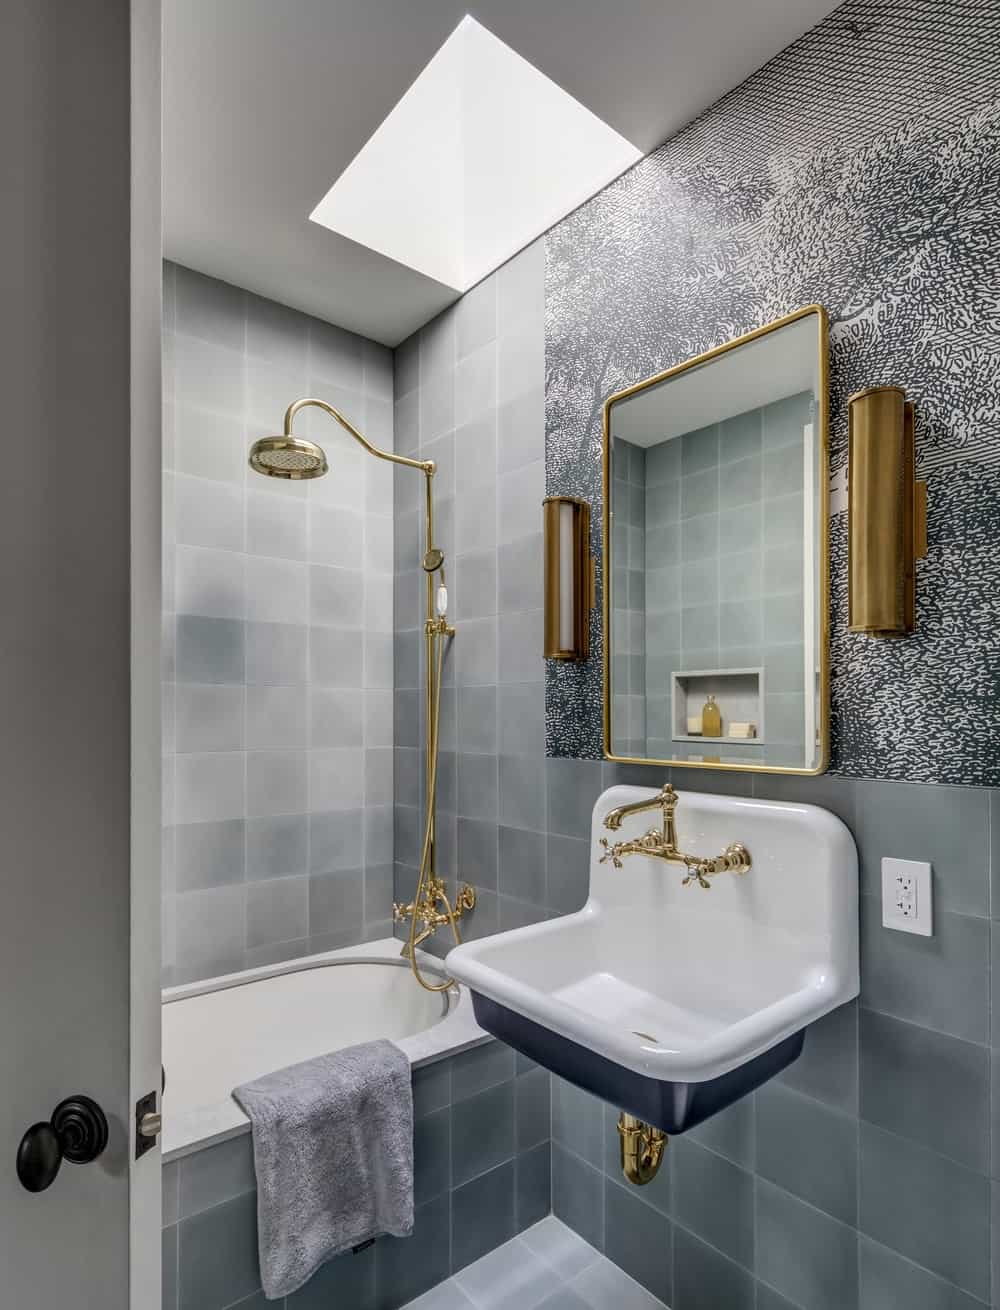 The bathroom has consistent gray tiles on its walls that make the bronze fixtures and white porcelain sink and tub stand out.